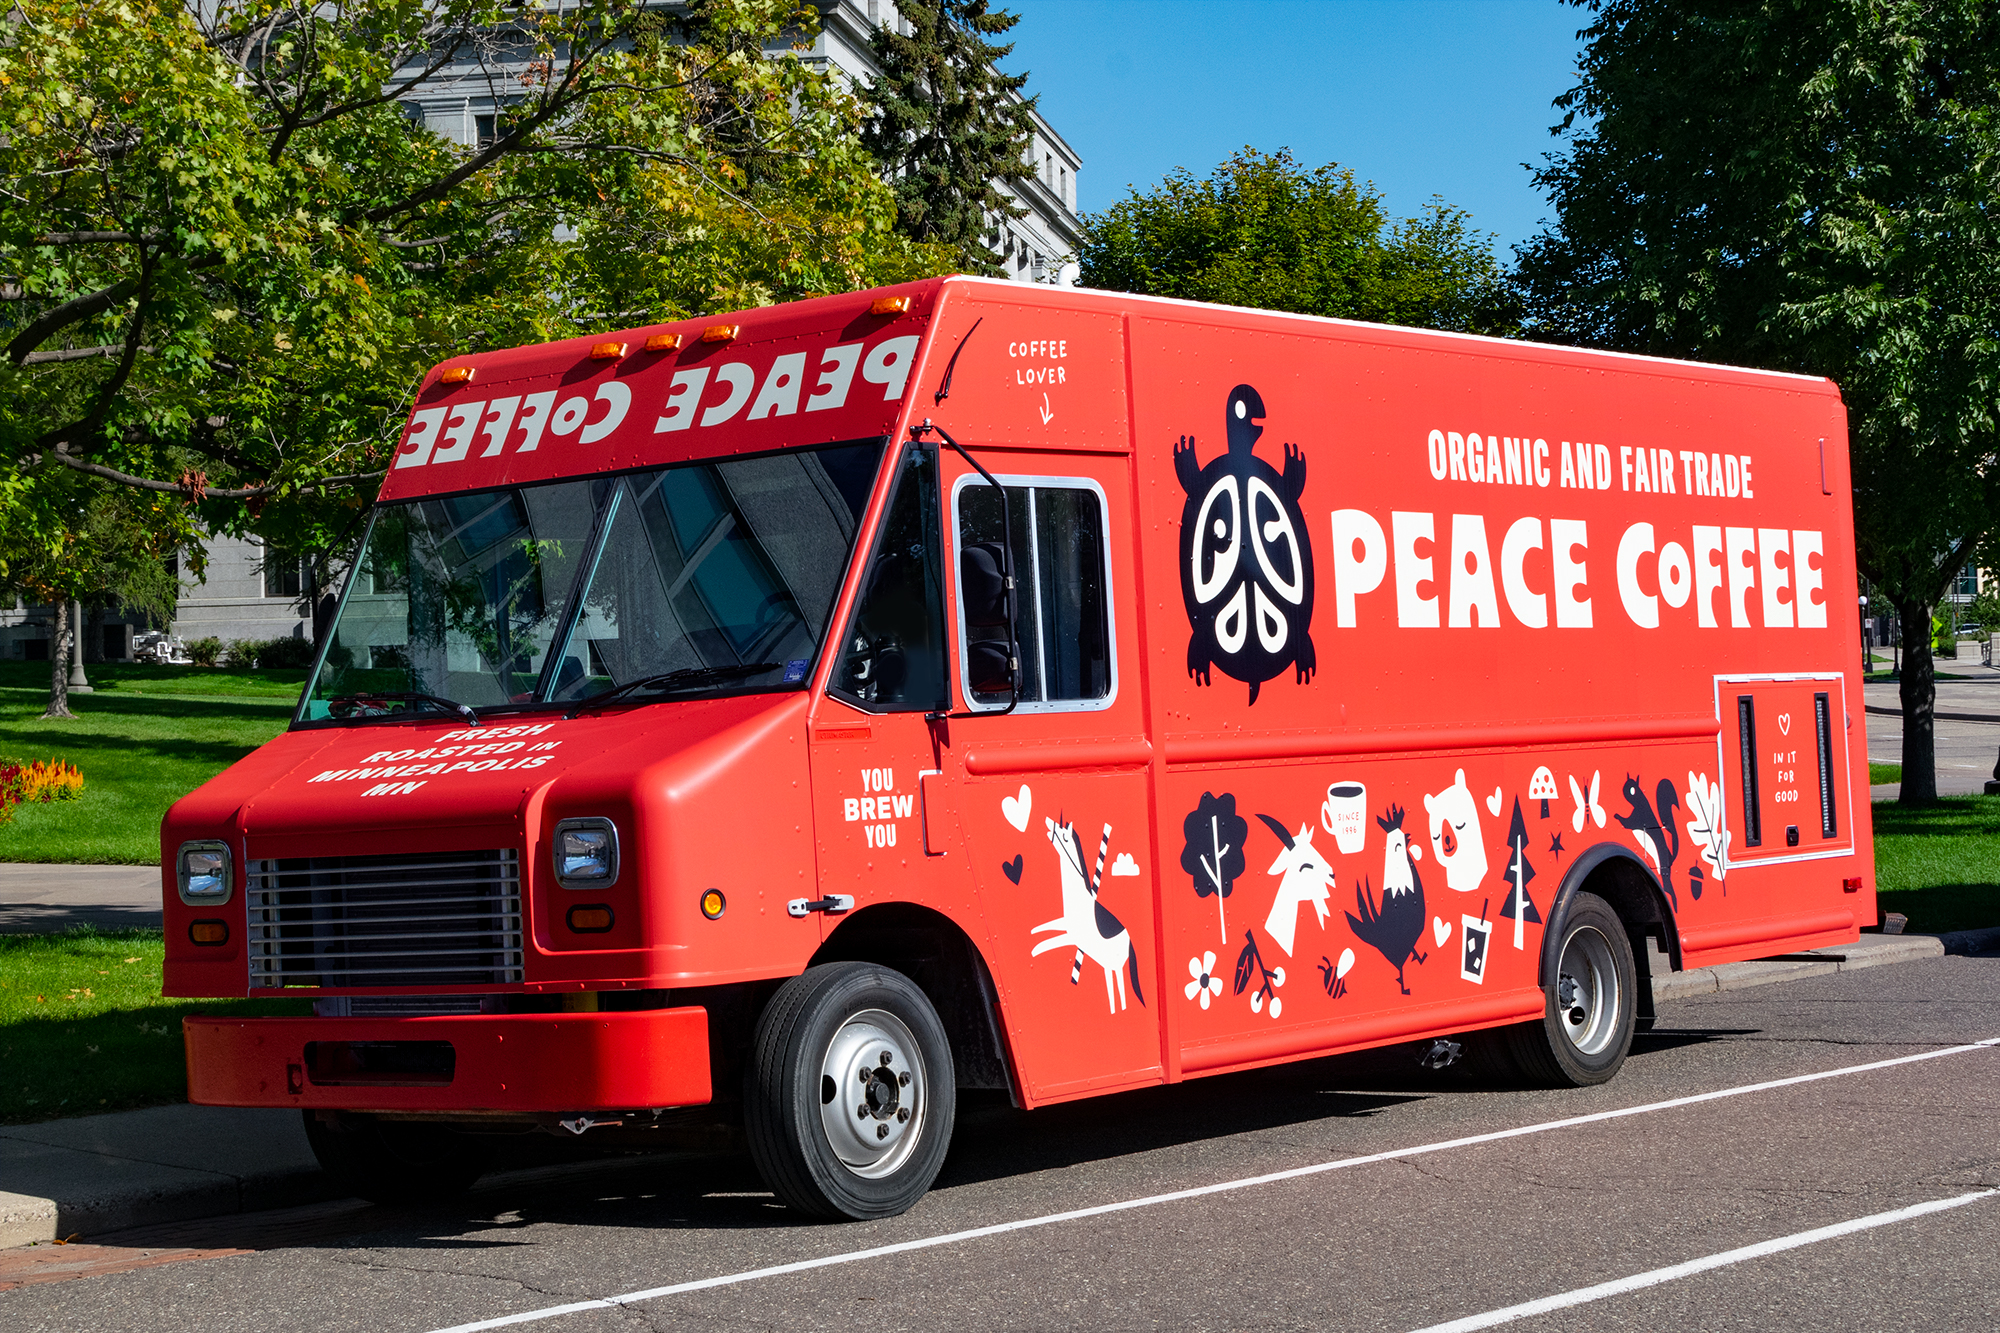 Peace Coffee food truck designed by Abby Haddican at Werner Design Werks.